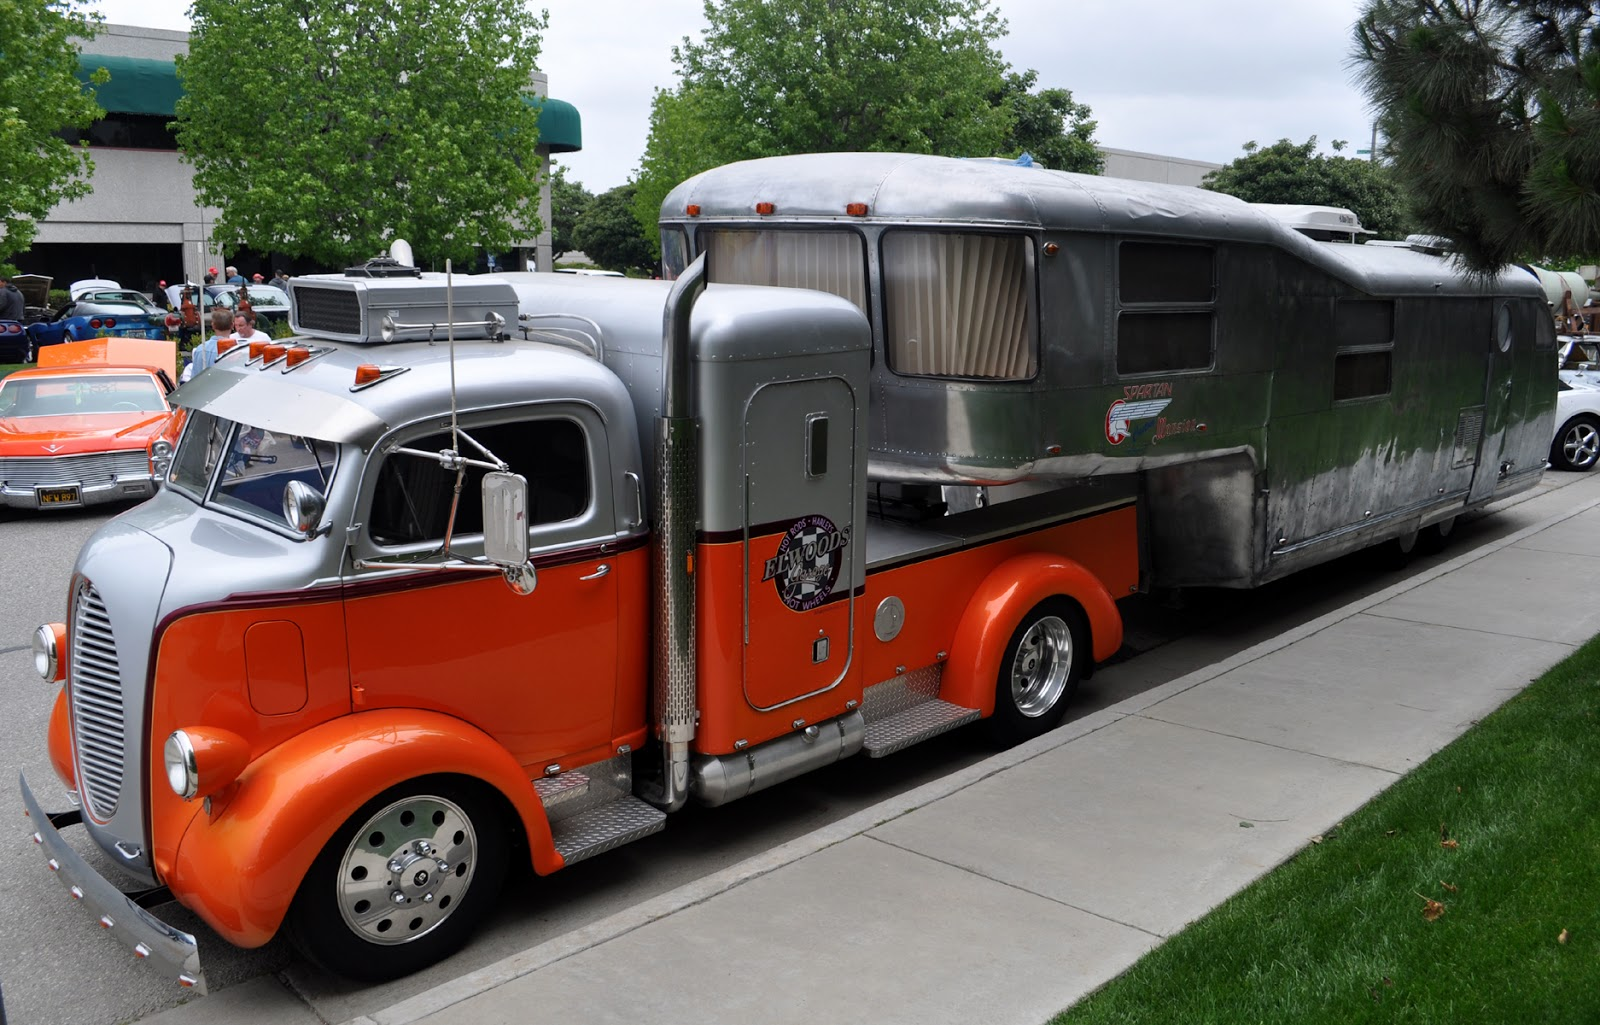 Customized License Plates >> Just A Car Guy: Most impressive hot rod truck and trailer I've seen in a while, the Elwoods ...